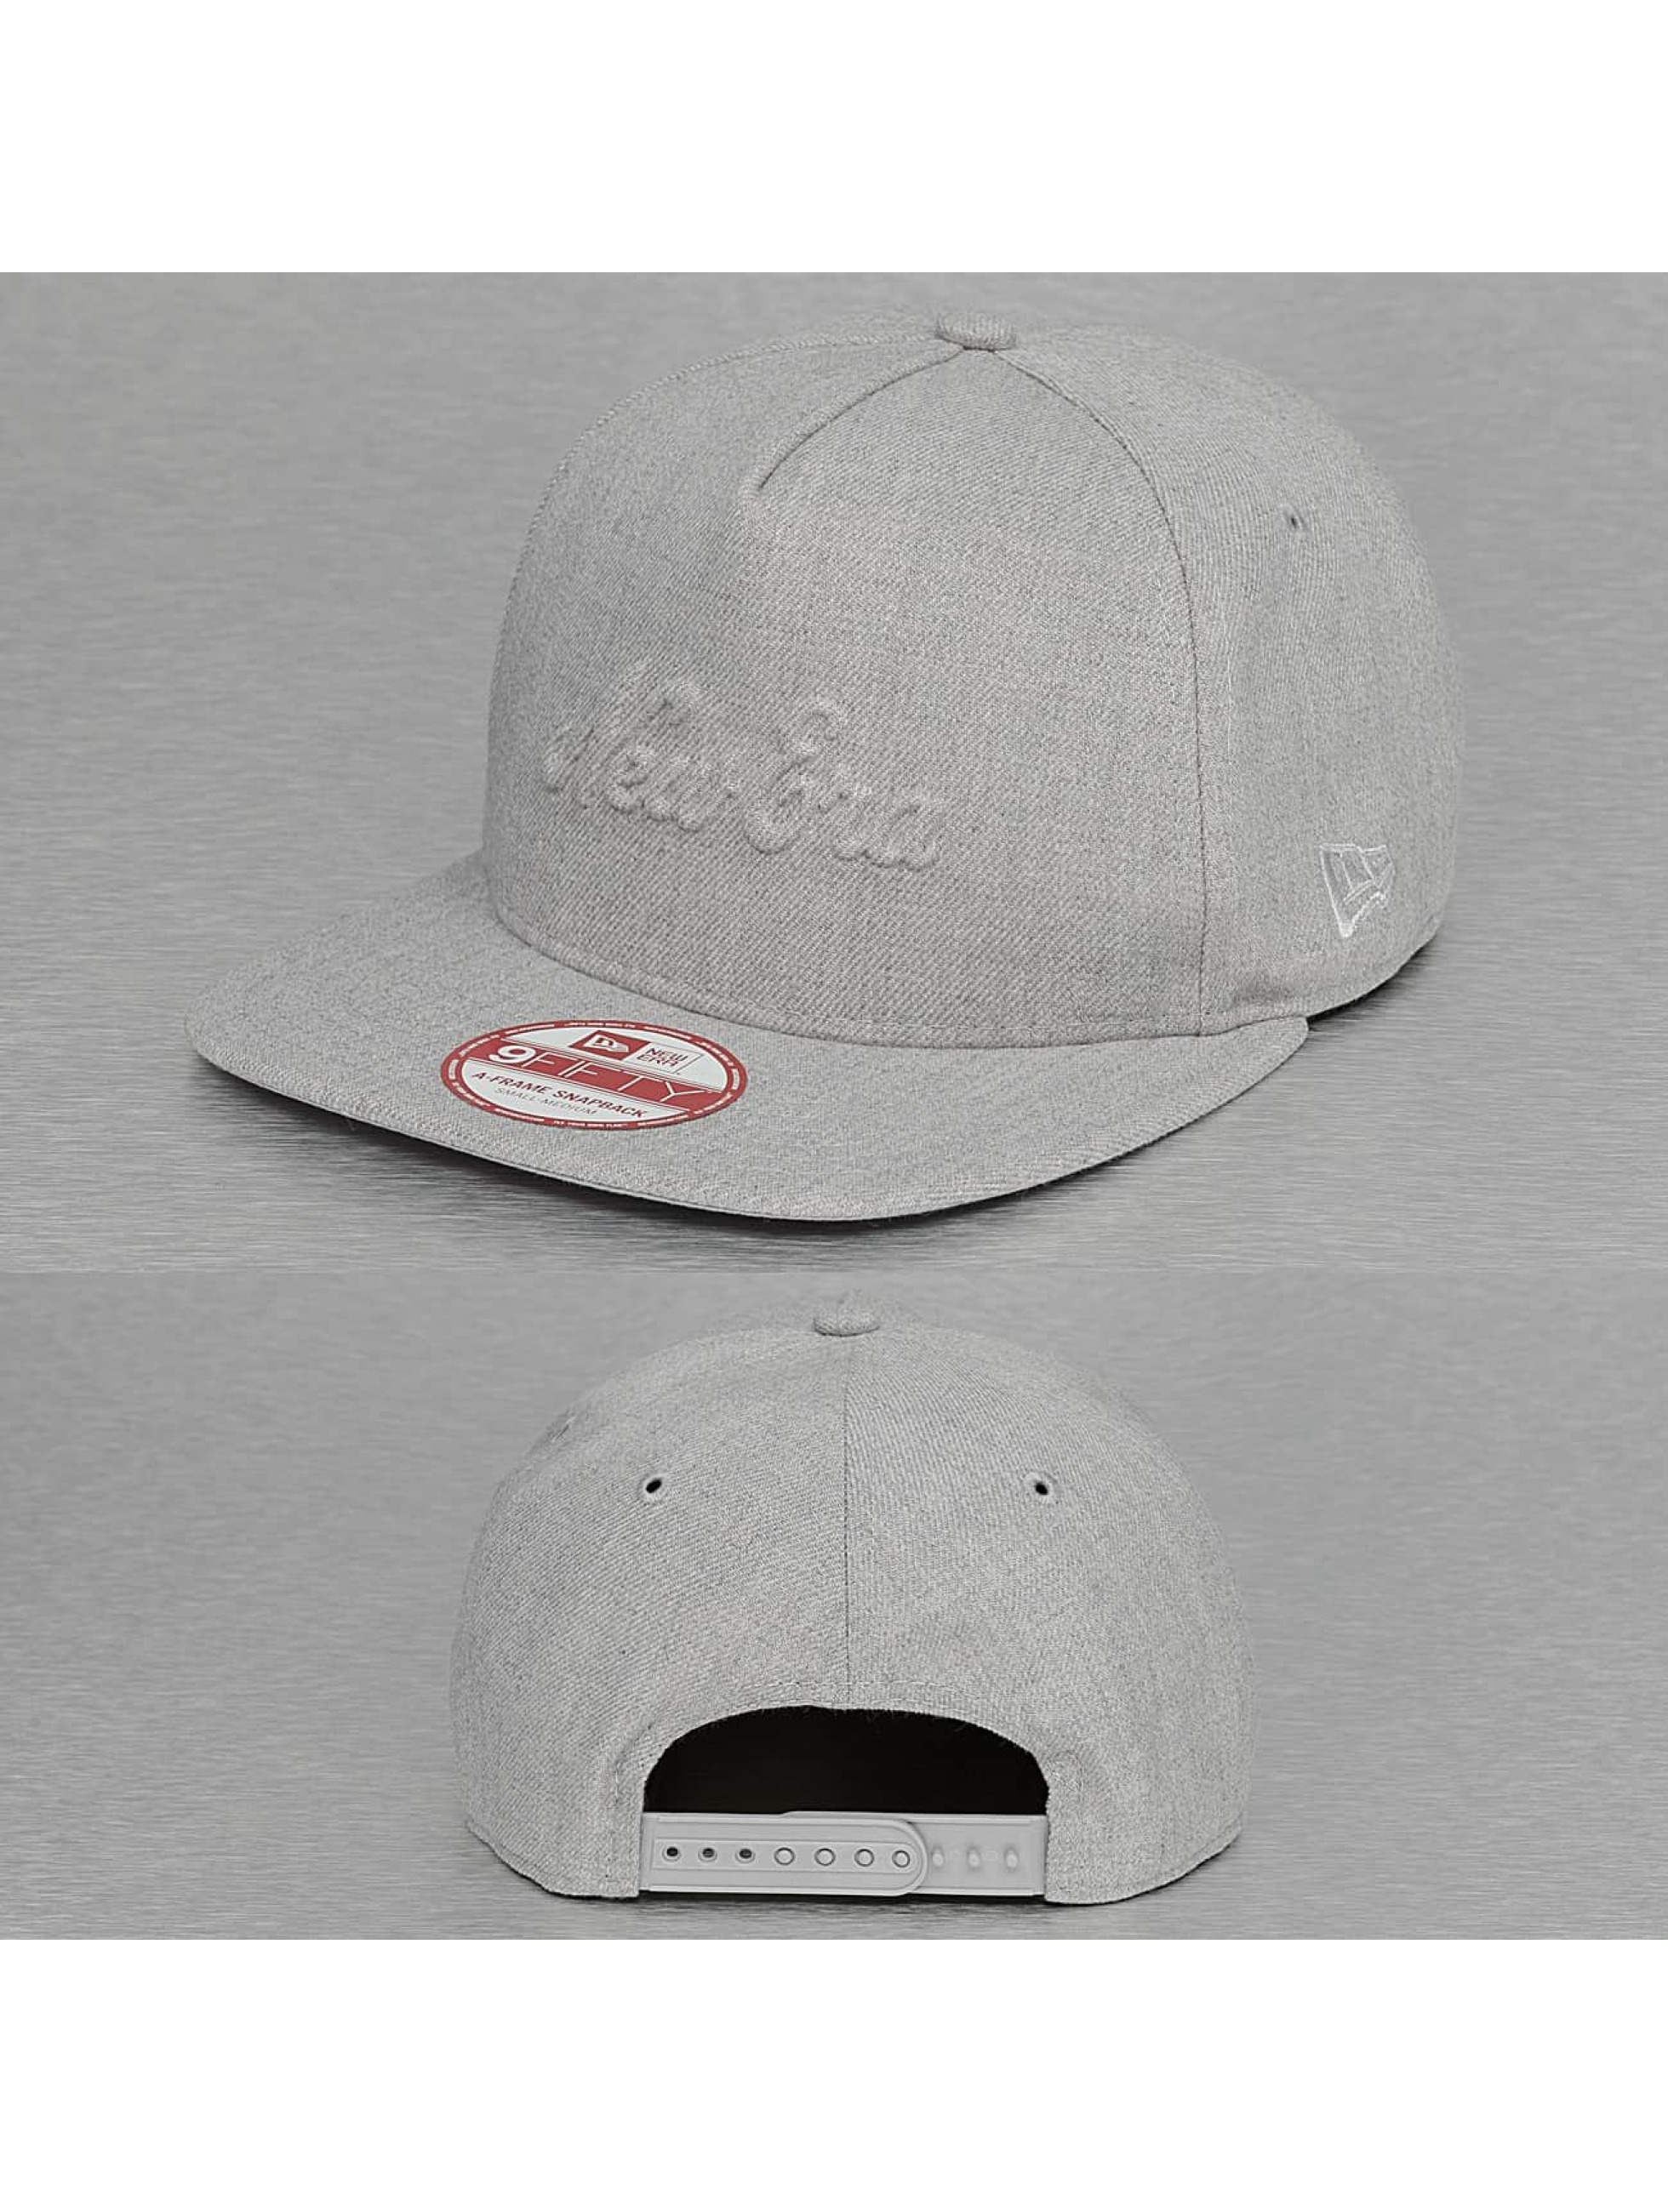 New Era Кепка с застёжкой Heather Gel Fill серый